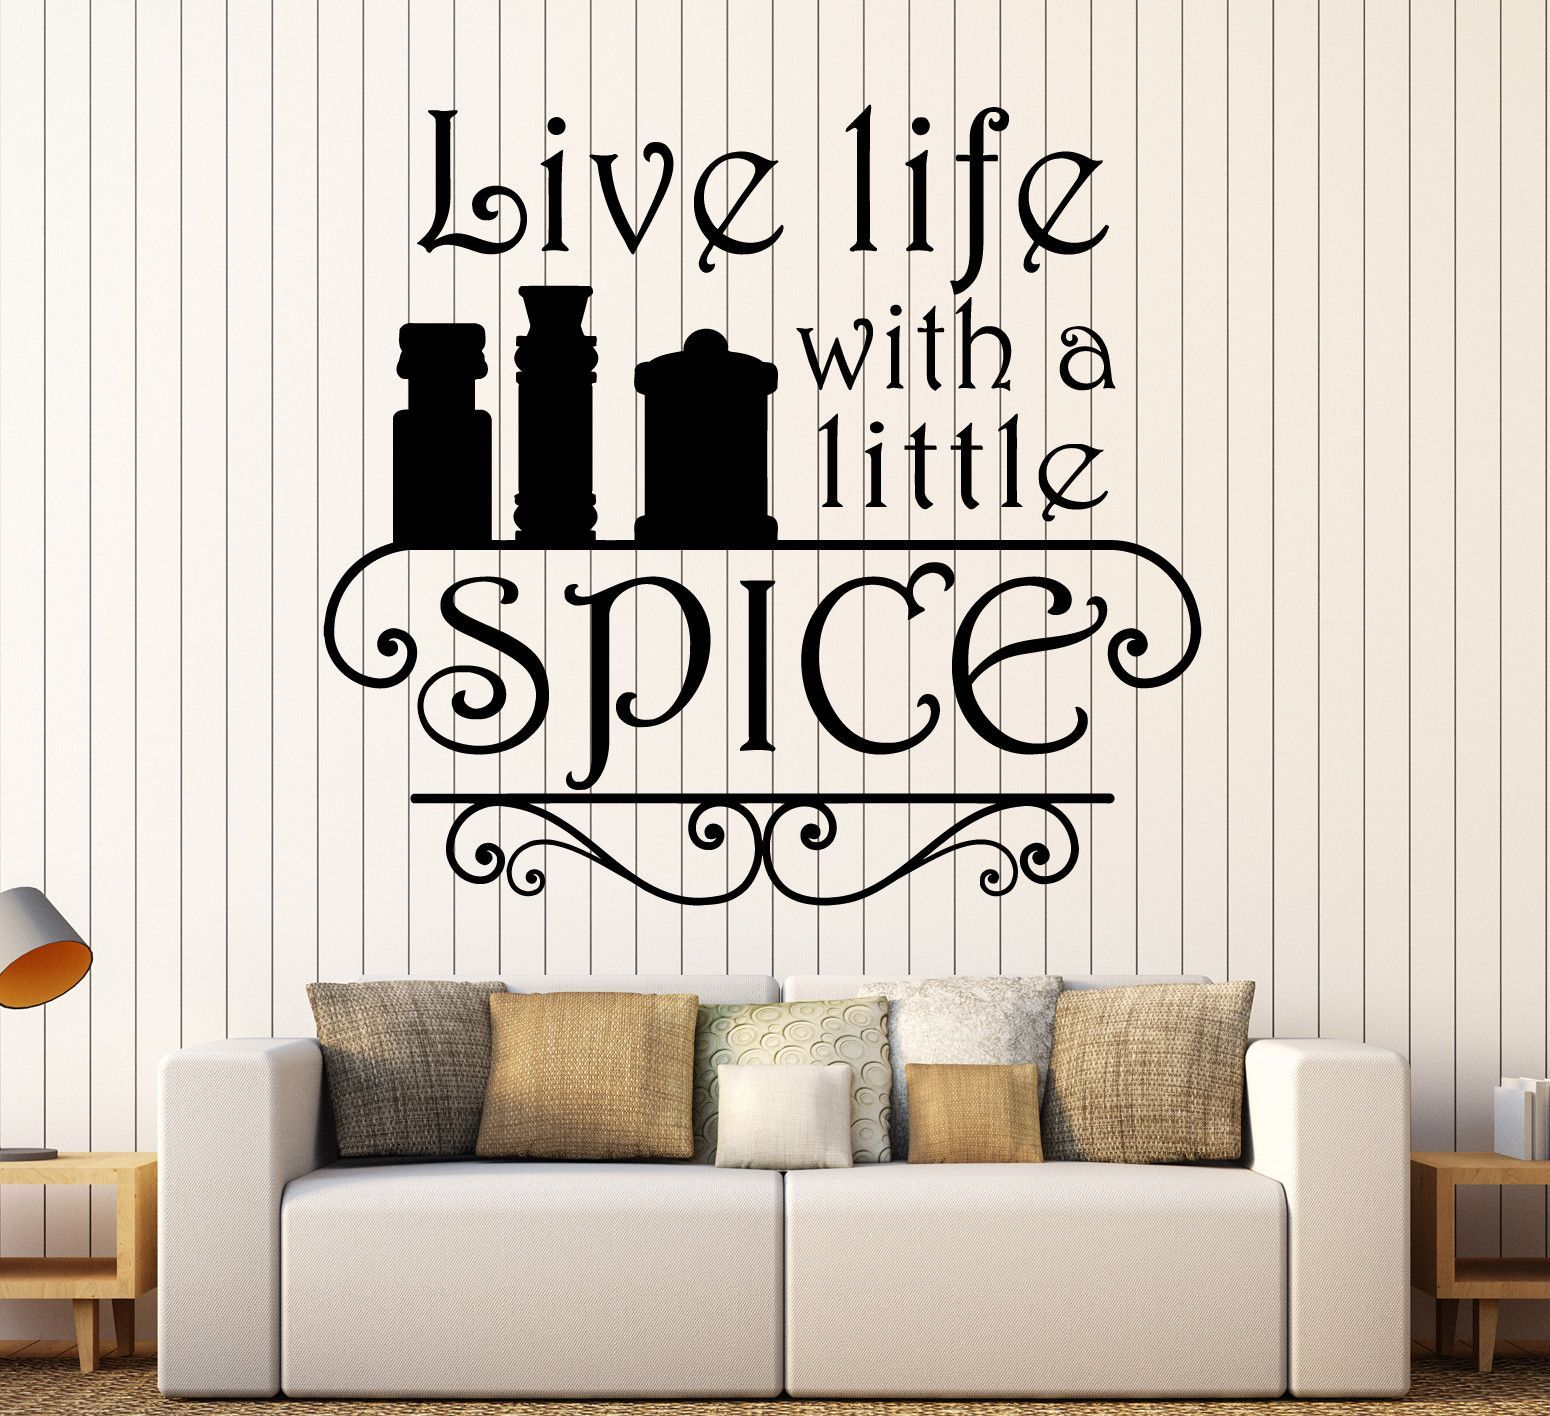 vinyl wall decal kitchen quote spice chef restaurant cook on wall stickers for kitchen id=16355